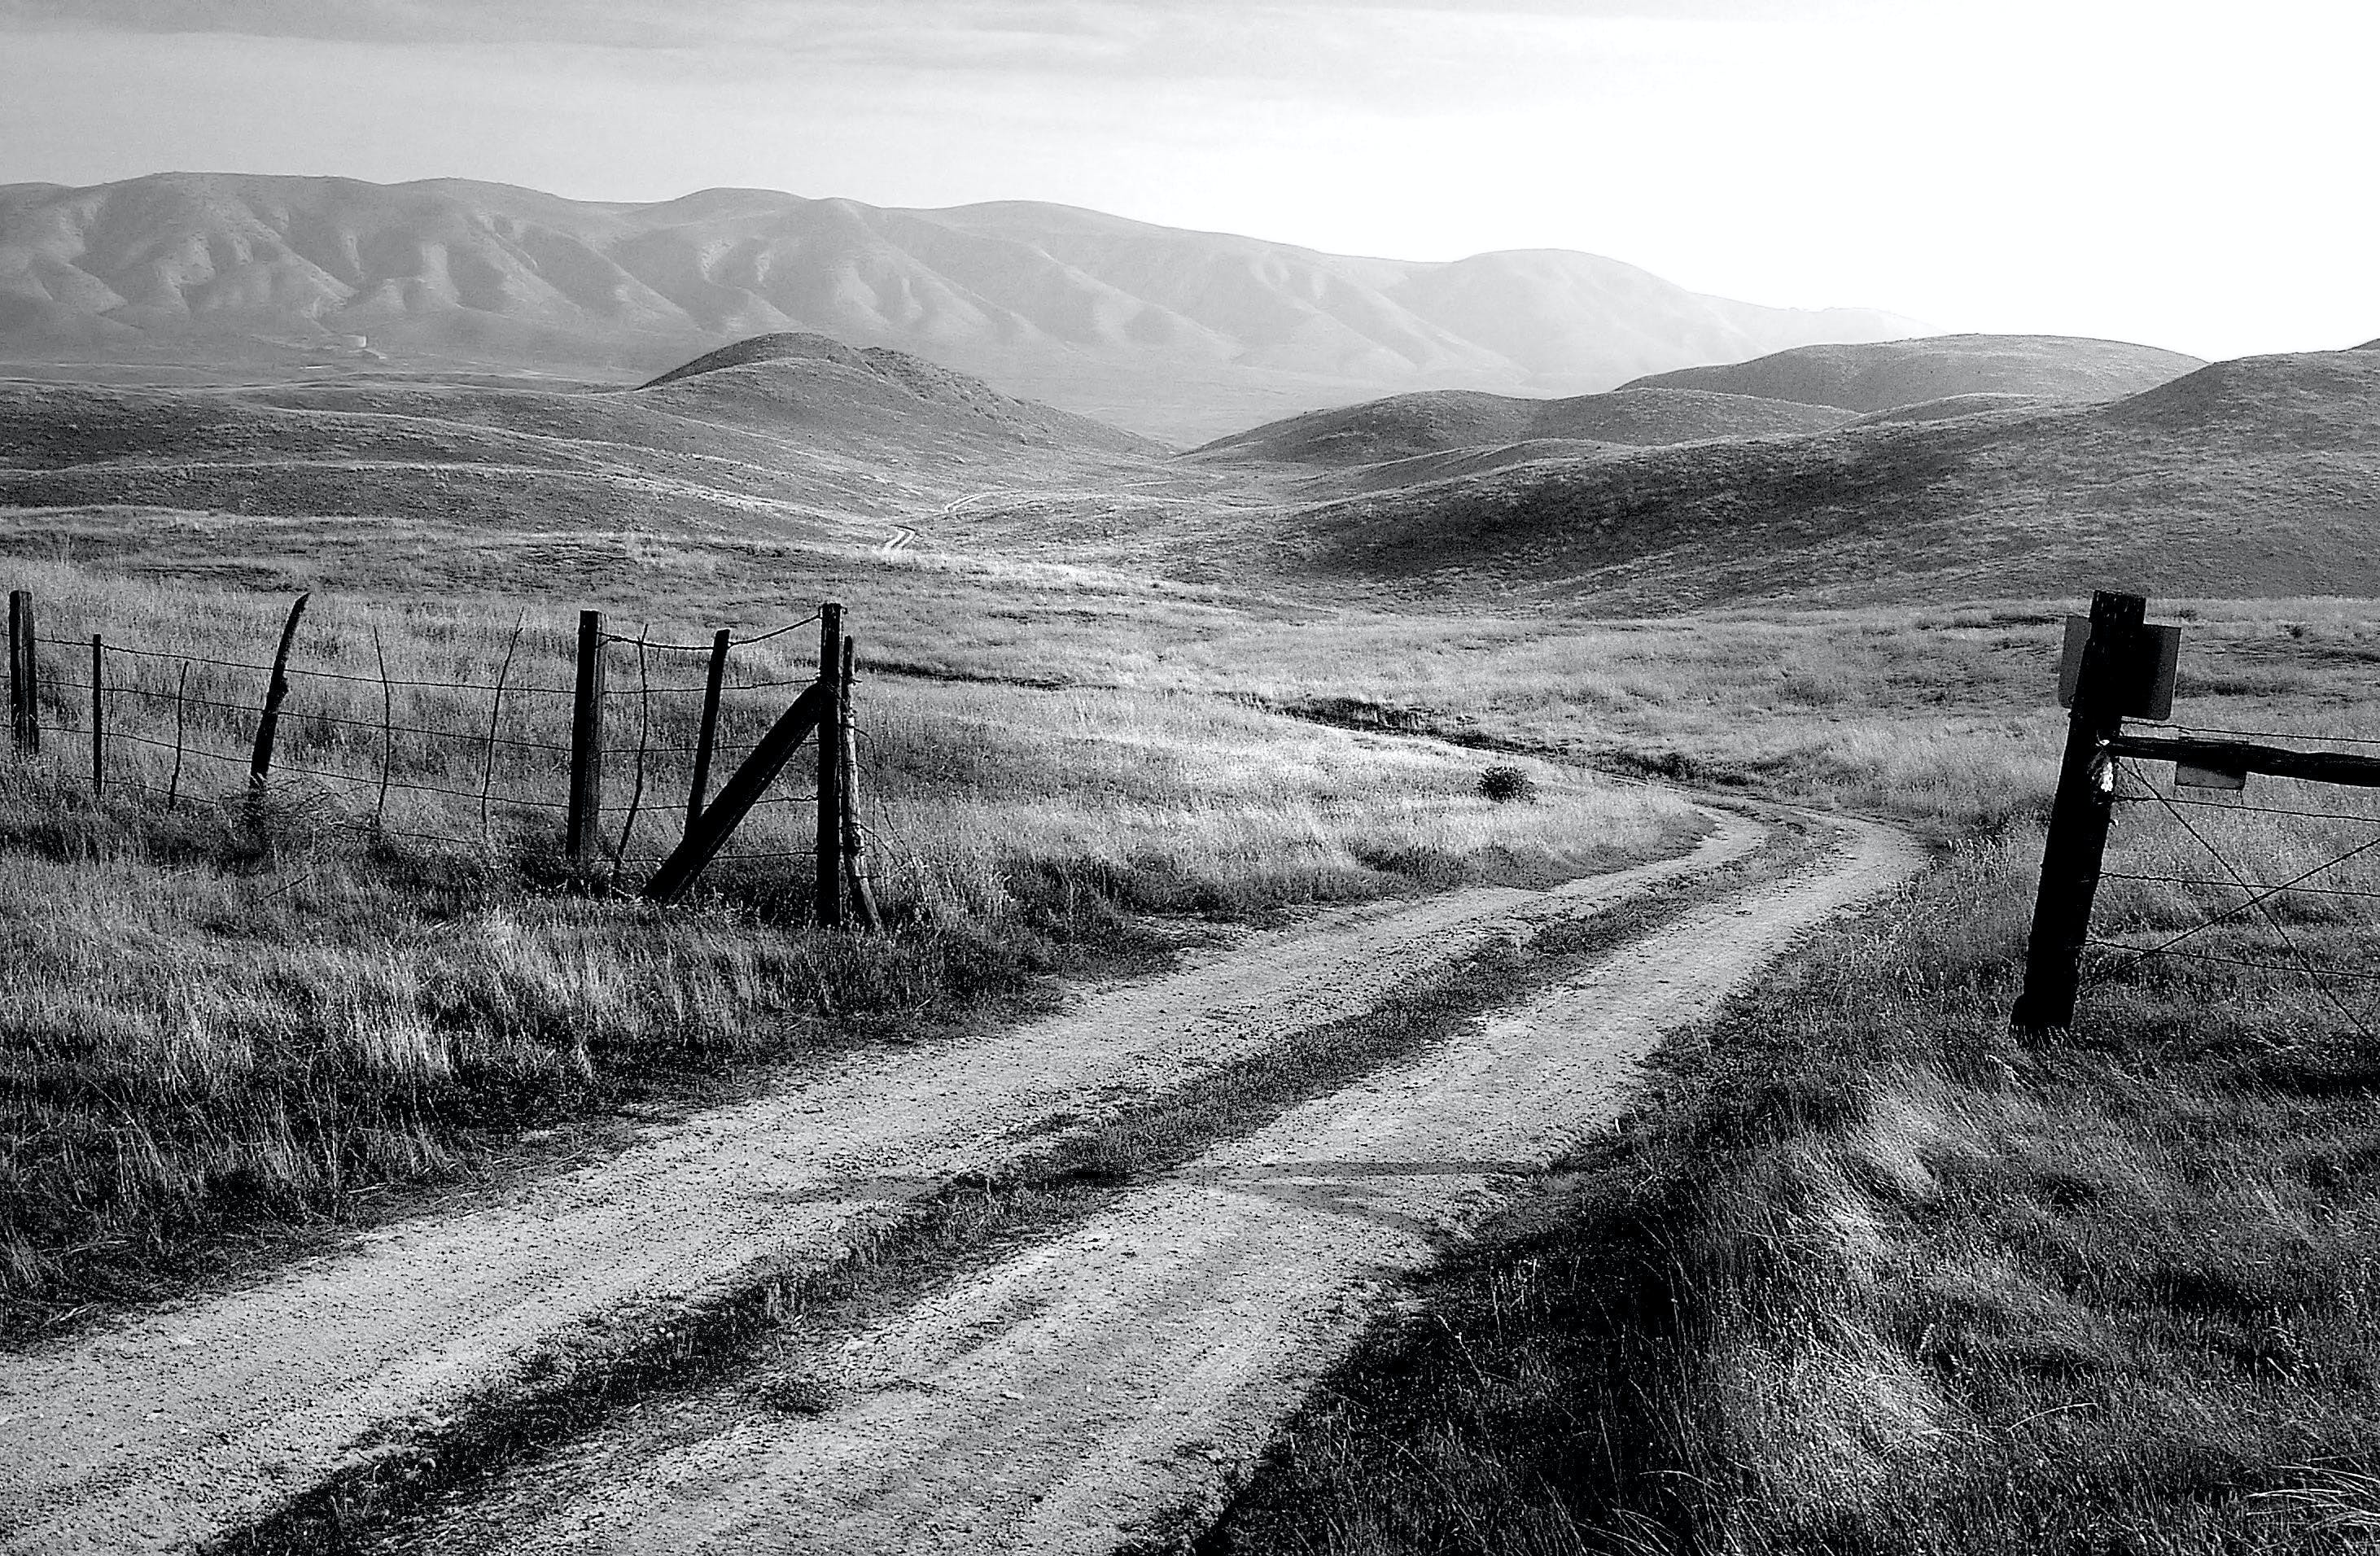 Grayscale Photo of Road and Mountain at Daytime